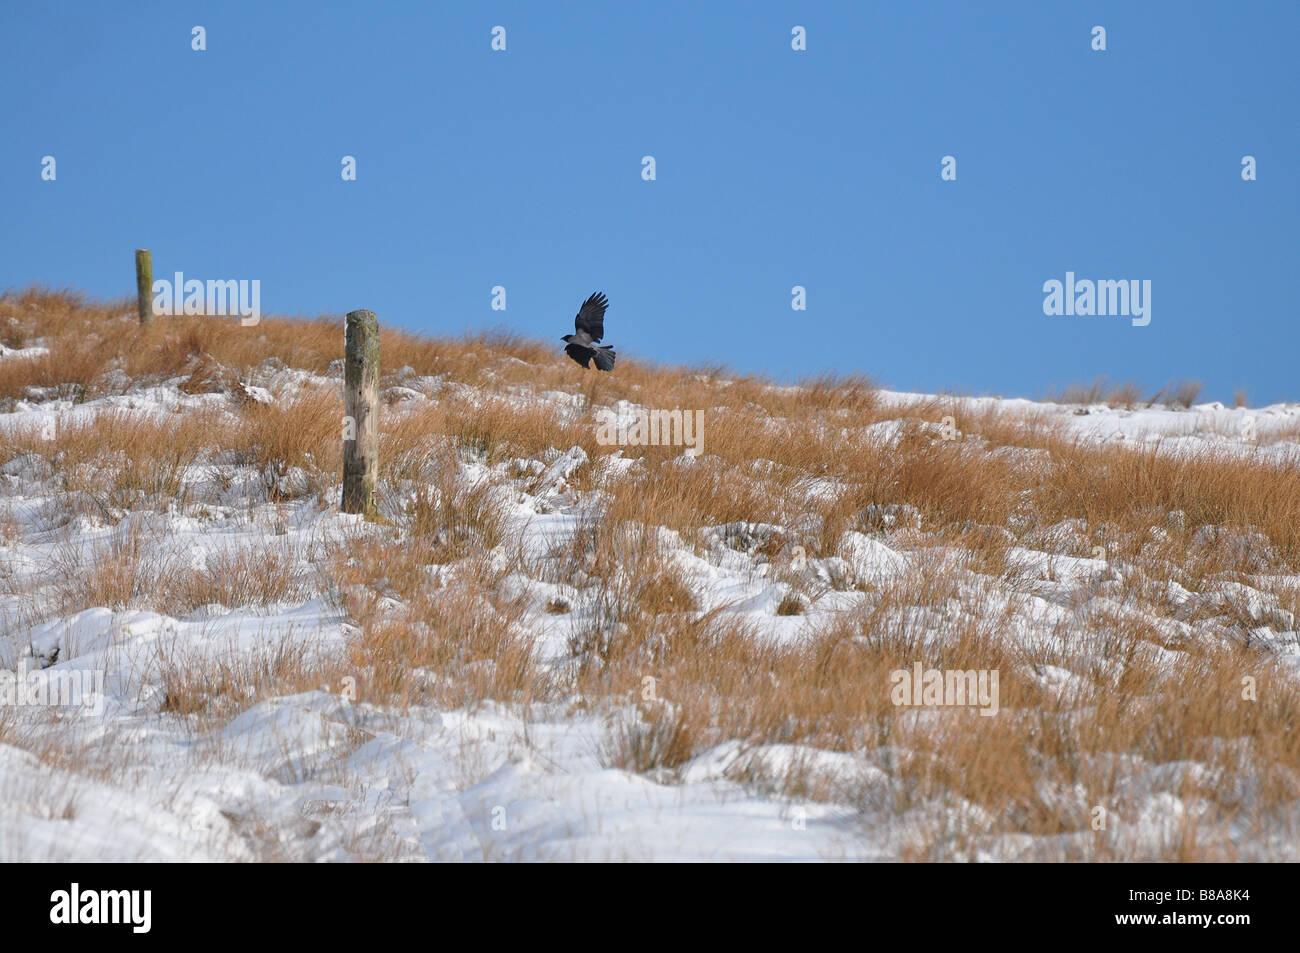 Falcon preparing to land on a fence post in winter - Stock Image